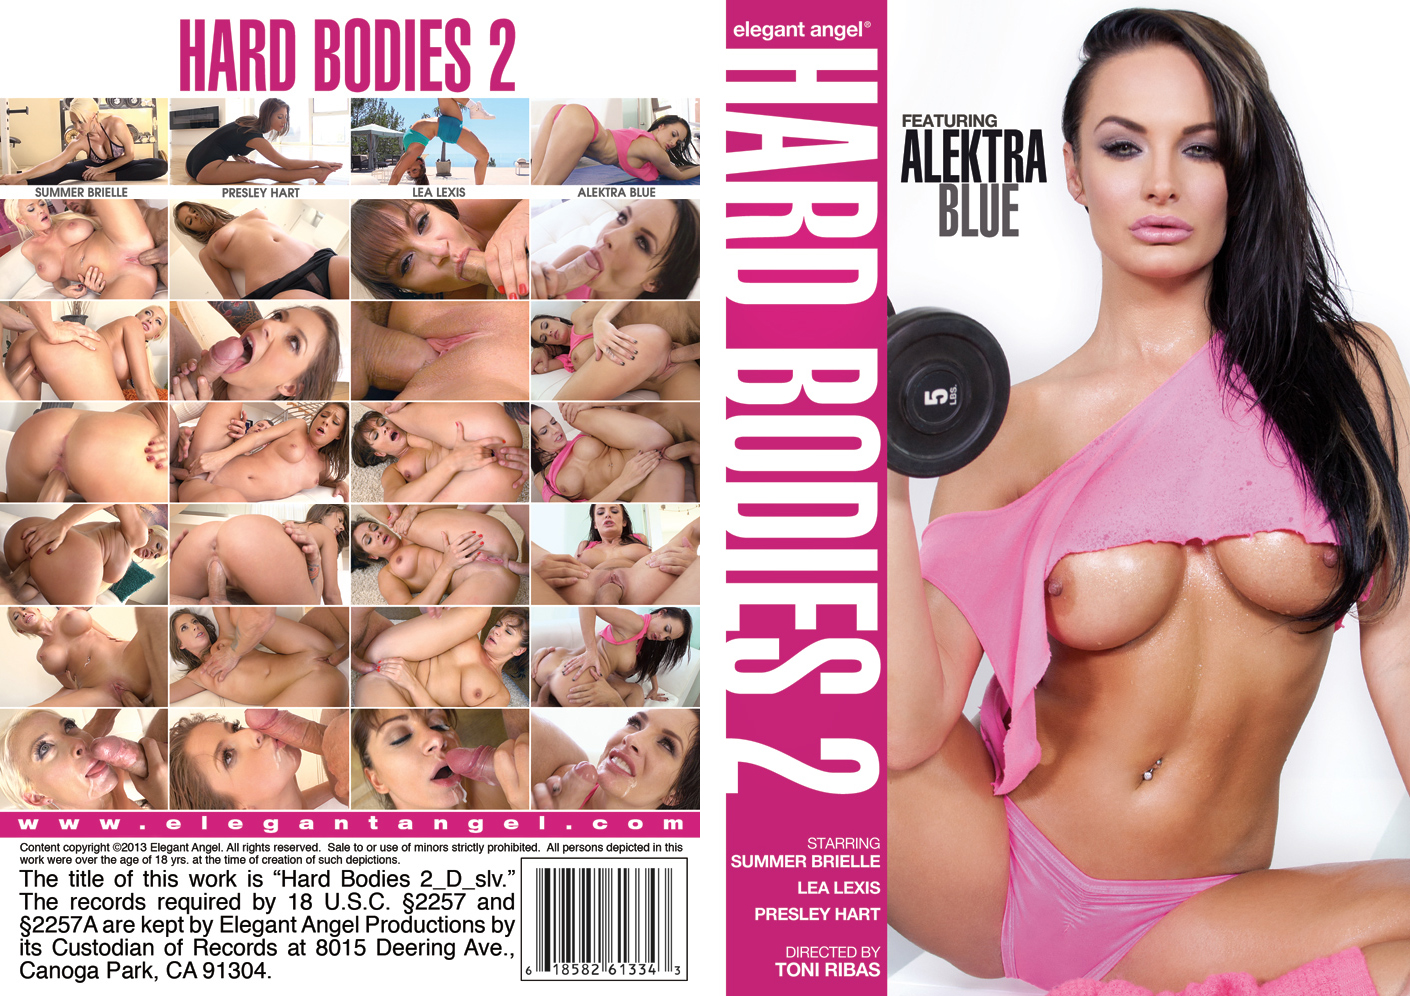 Hard Bodies Vol. 2 (2013)